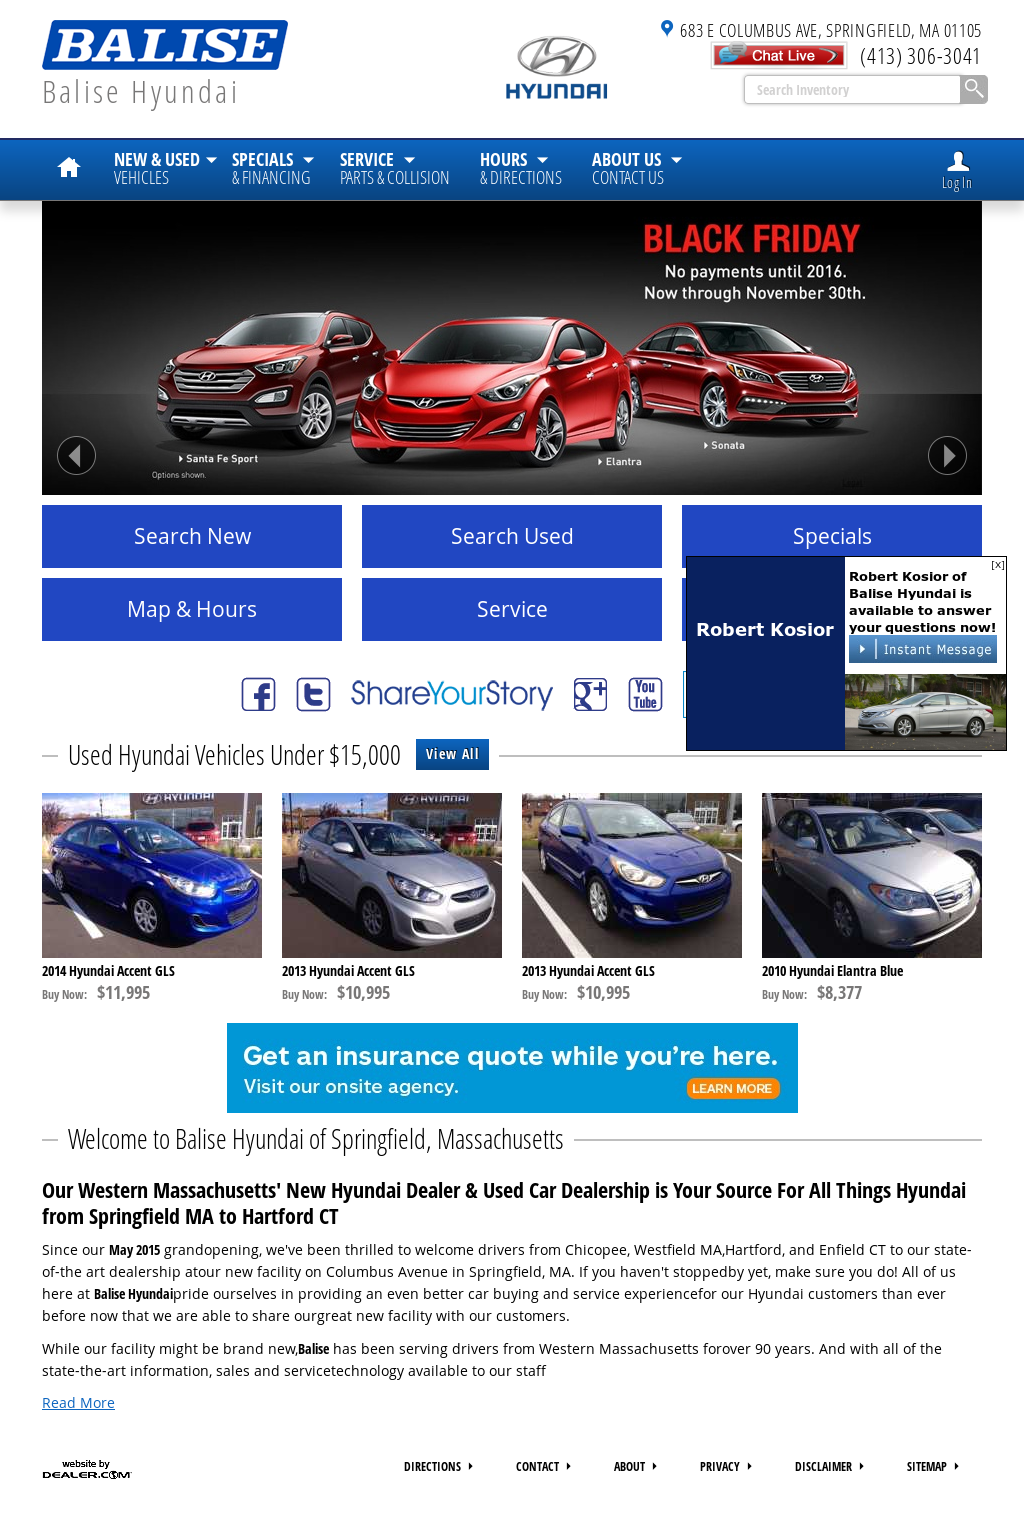 Balise Hyundai Springfield Competitors, Revenue And Employees   Owler  Company Profile